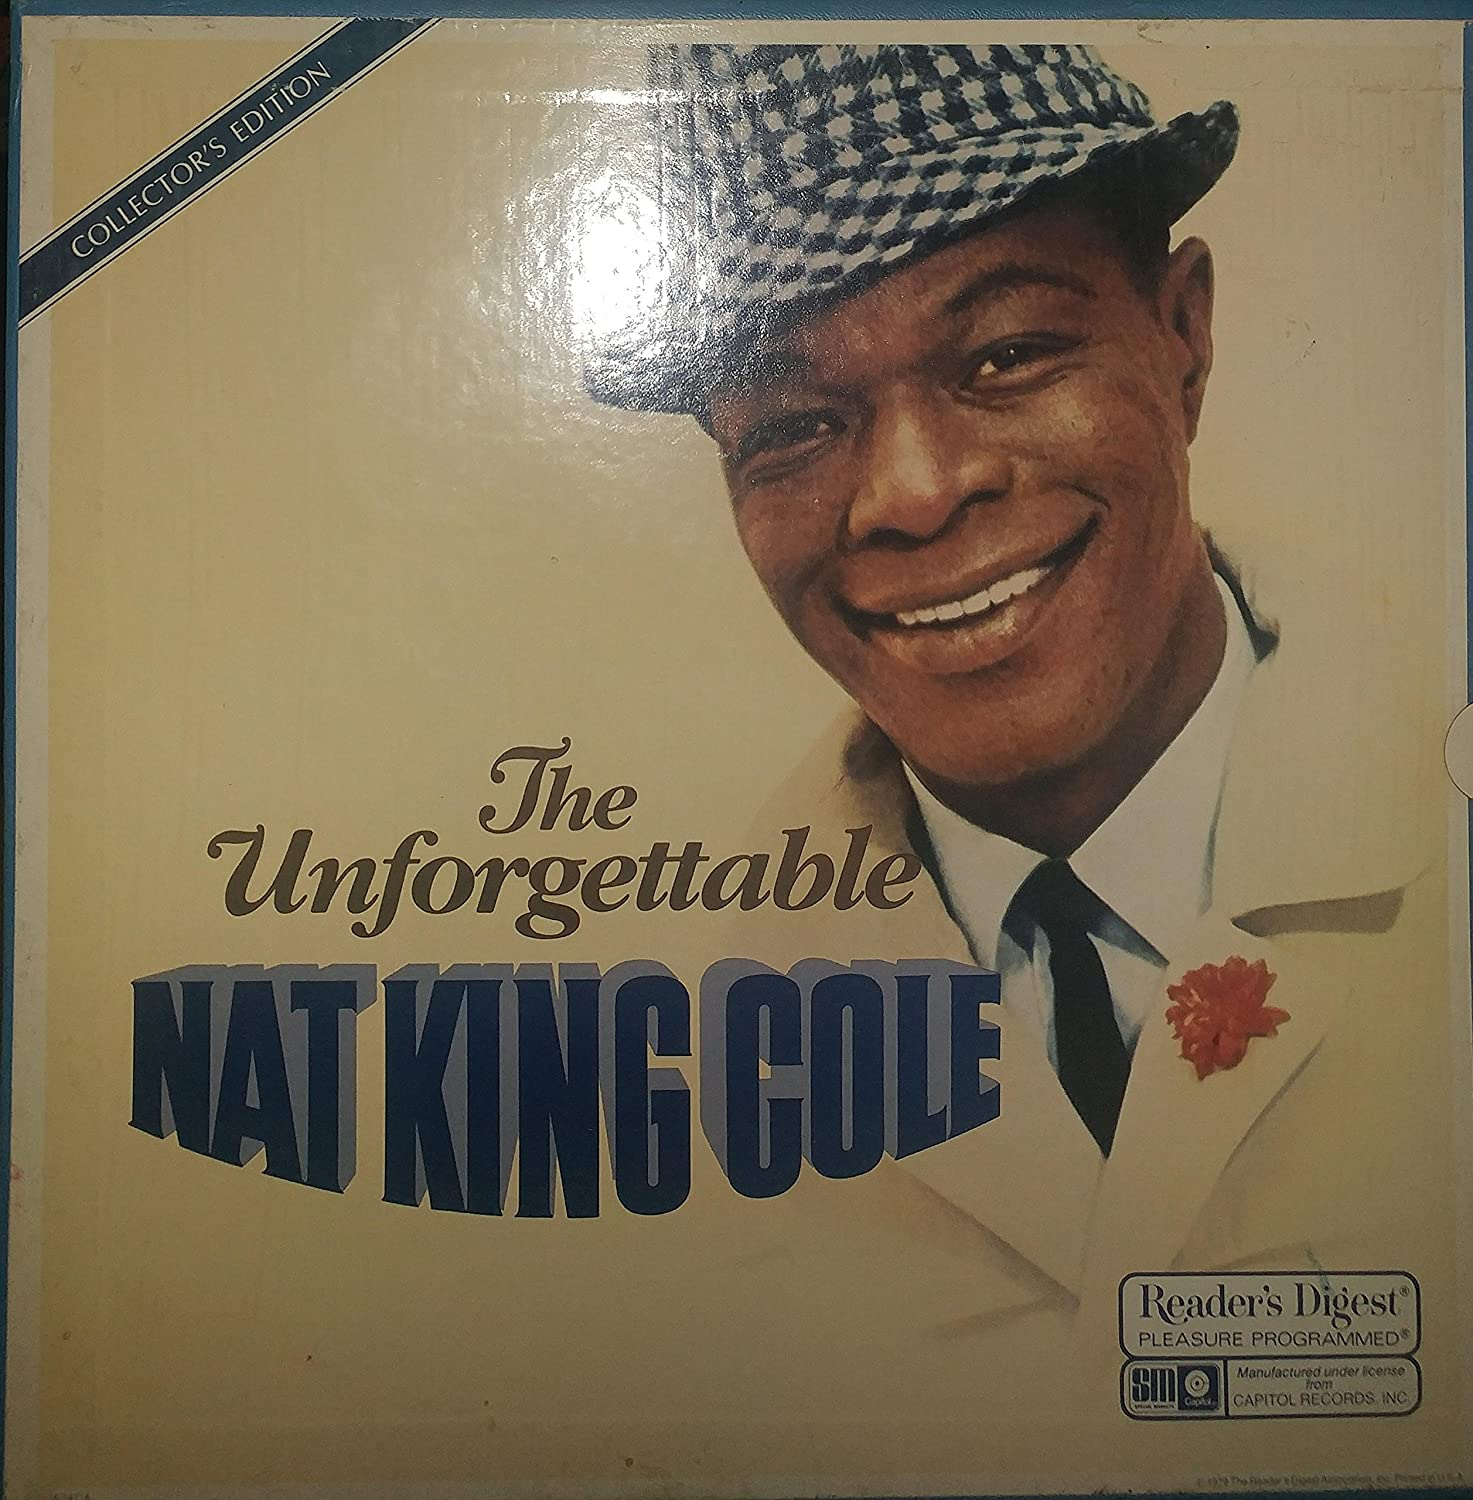 Nat King Cole The Unforgettable Nat King Cole Readers Digest 8 Record Collectors Edition Amazon Com Music